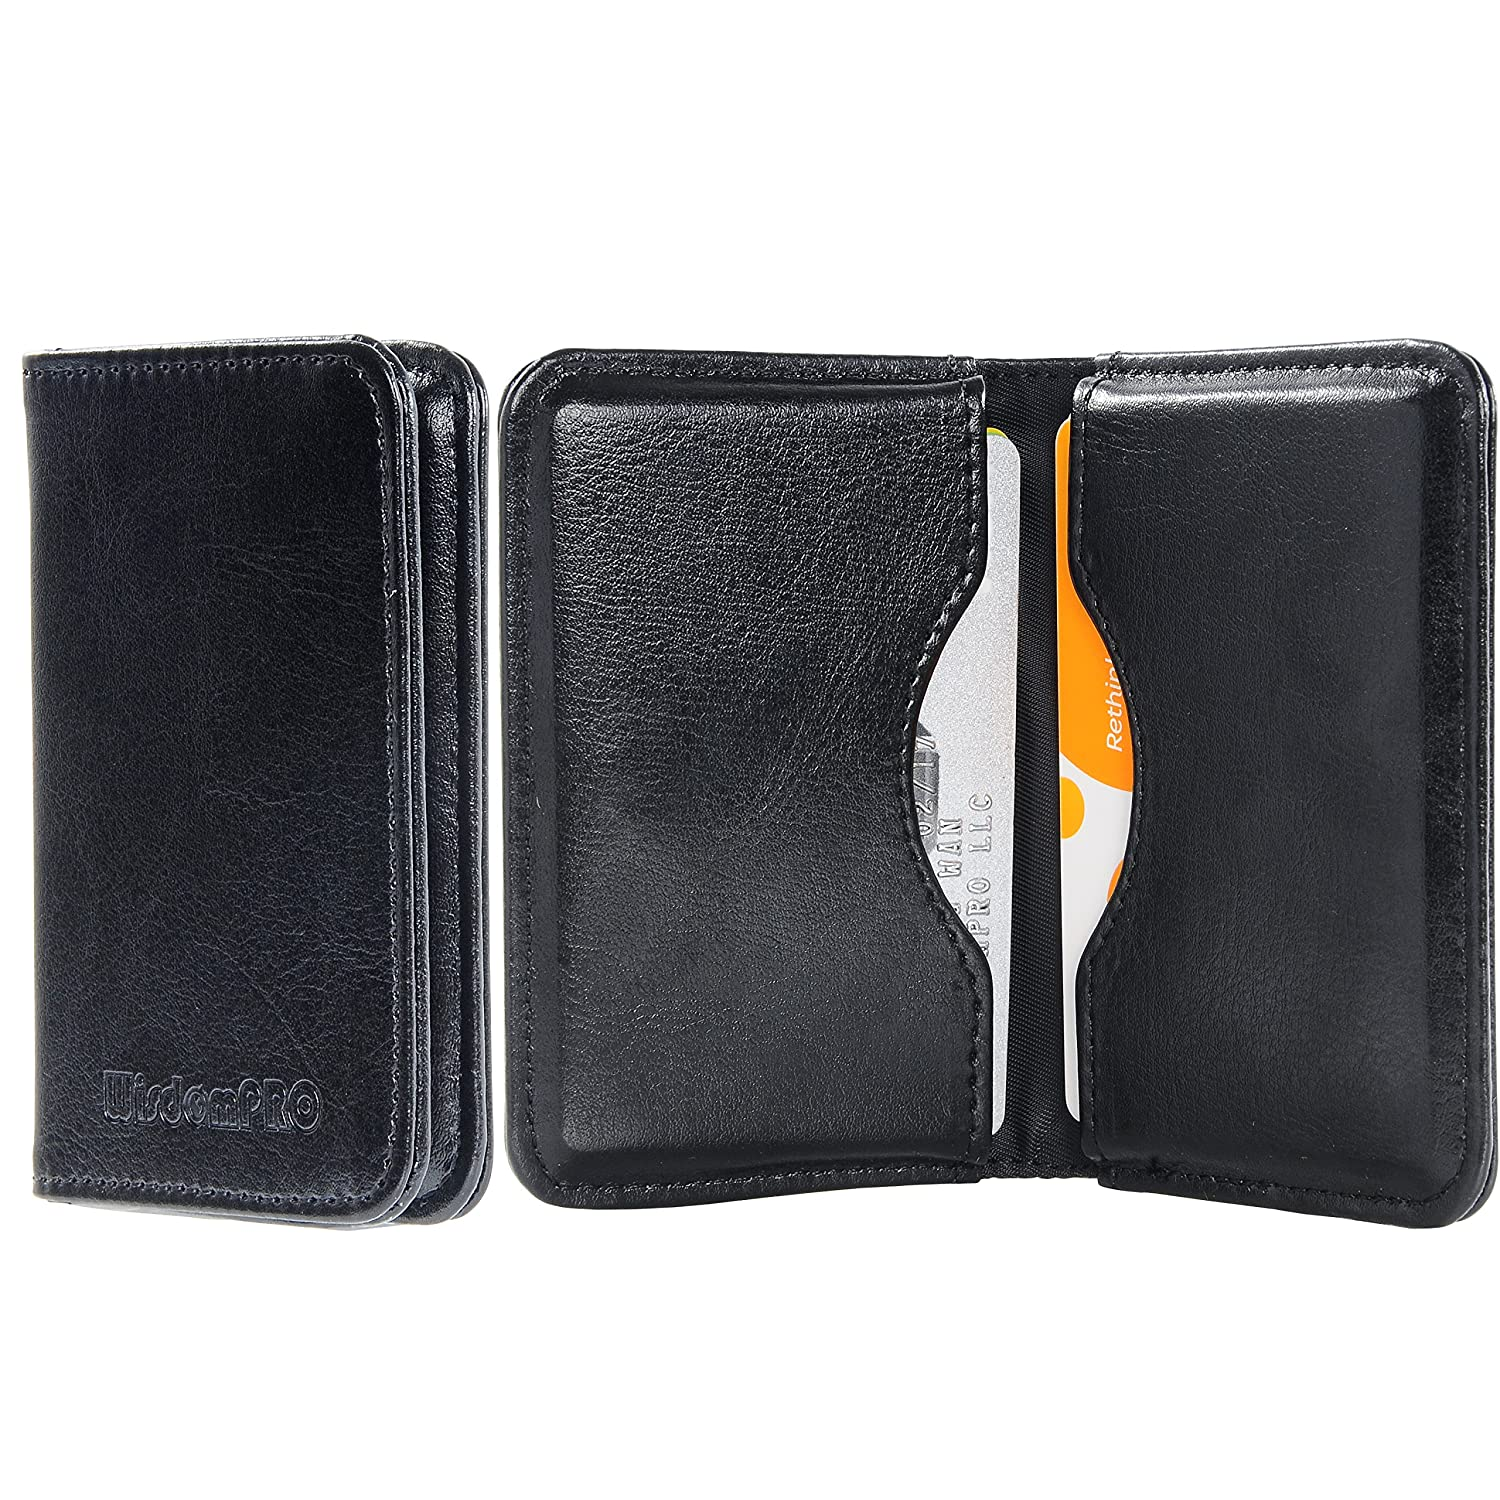 Business Card Holder Wisdompro 2-Sided Leather Folio Name Card ...